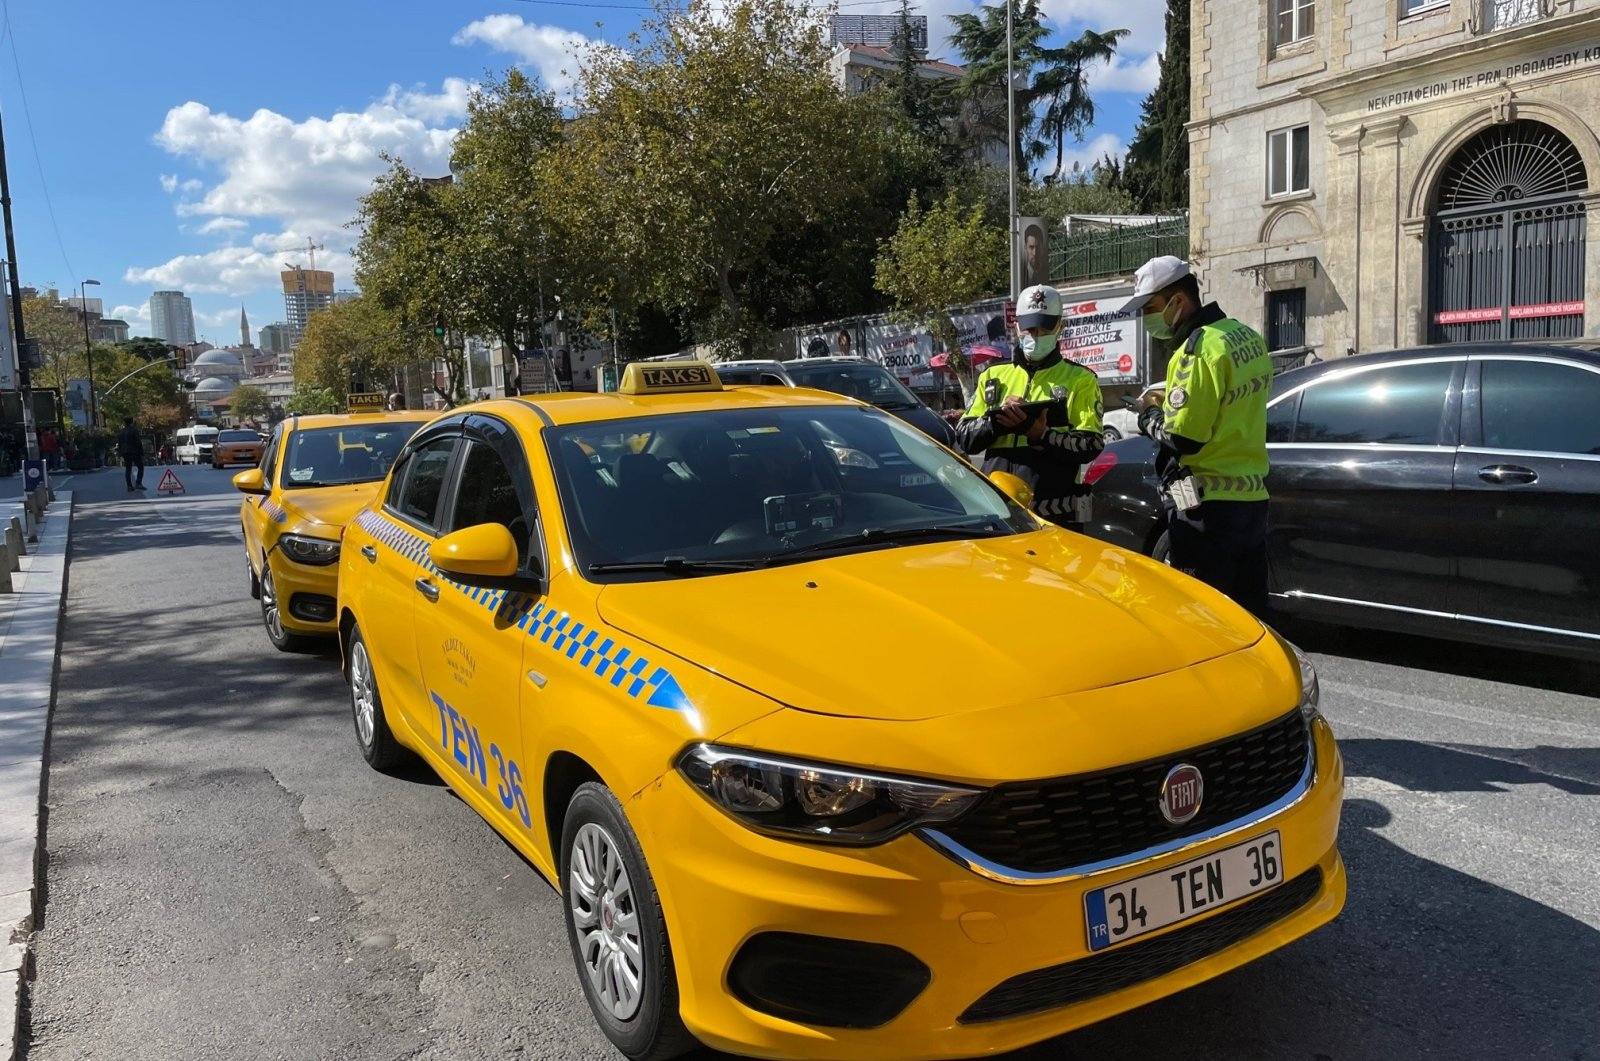 Police officers inspect taxis in Istanbul, Turkey, Oct. 5, 2021. (İHA PHOTO)